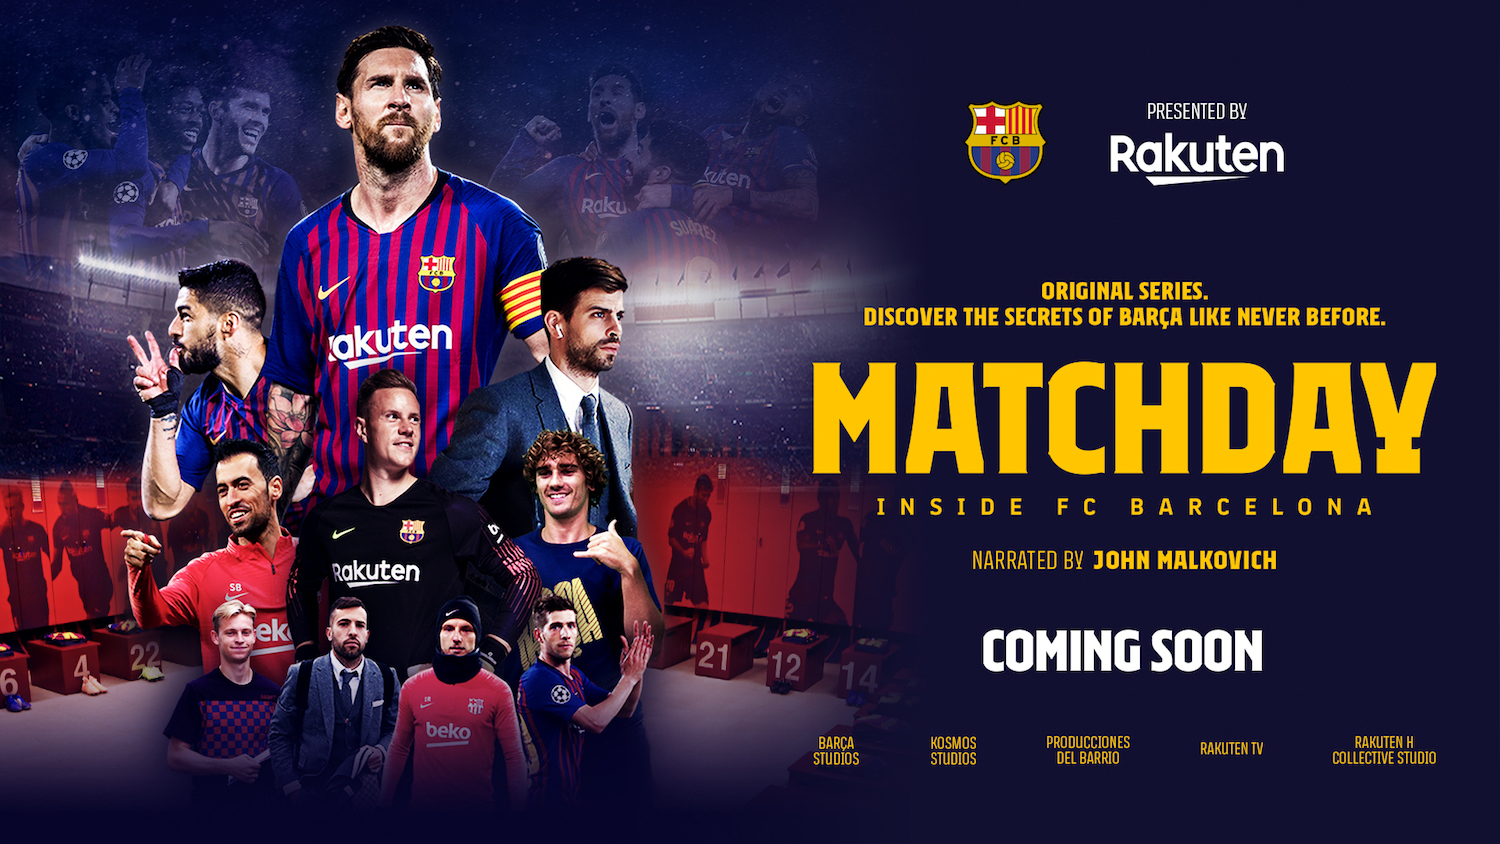 presenting matchday inside fc barcelona the new documentary series presenting matchday inside fc